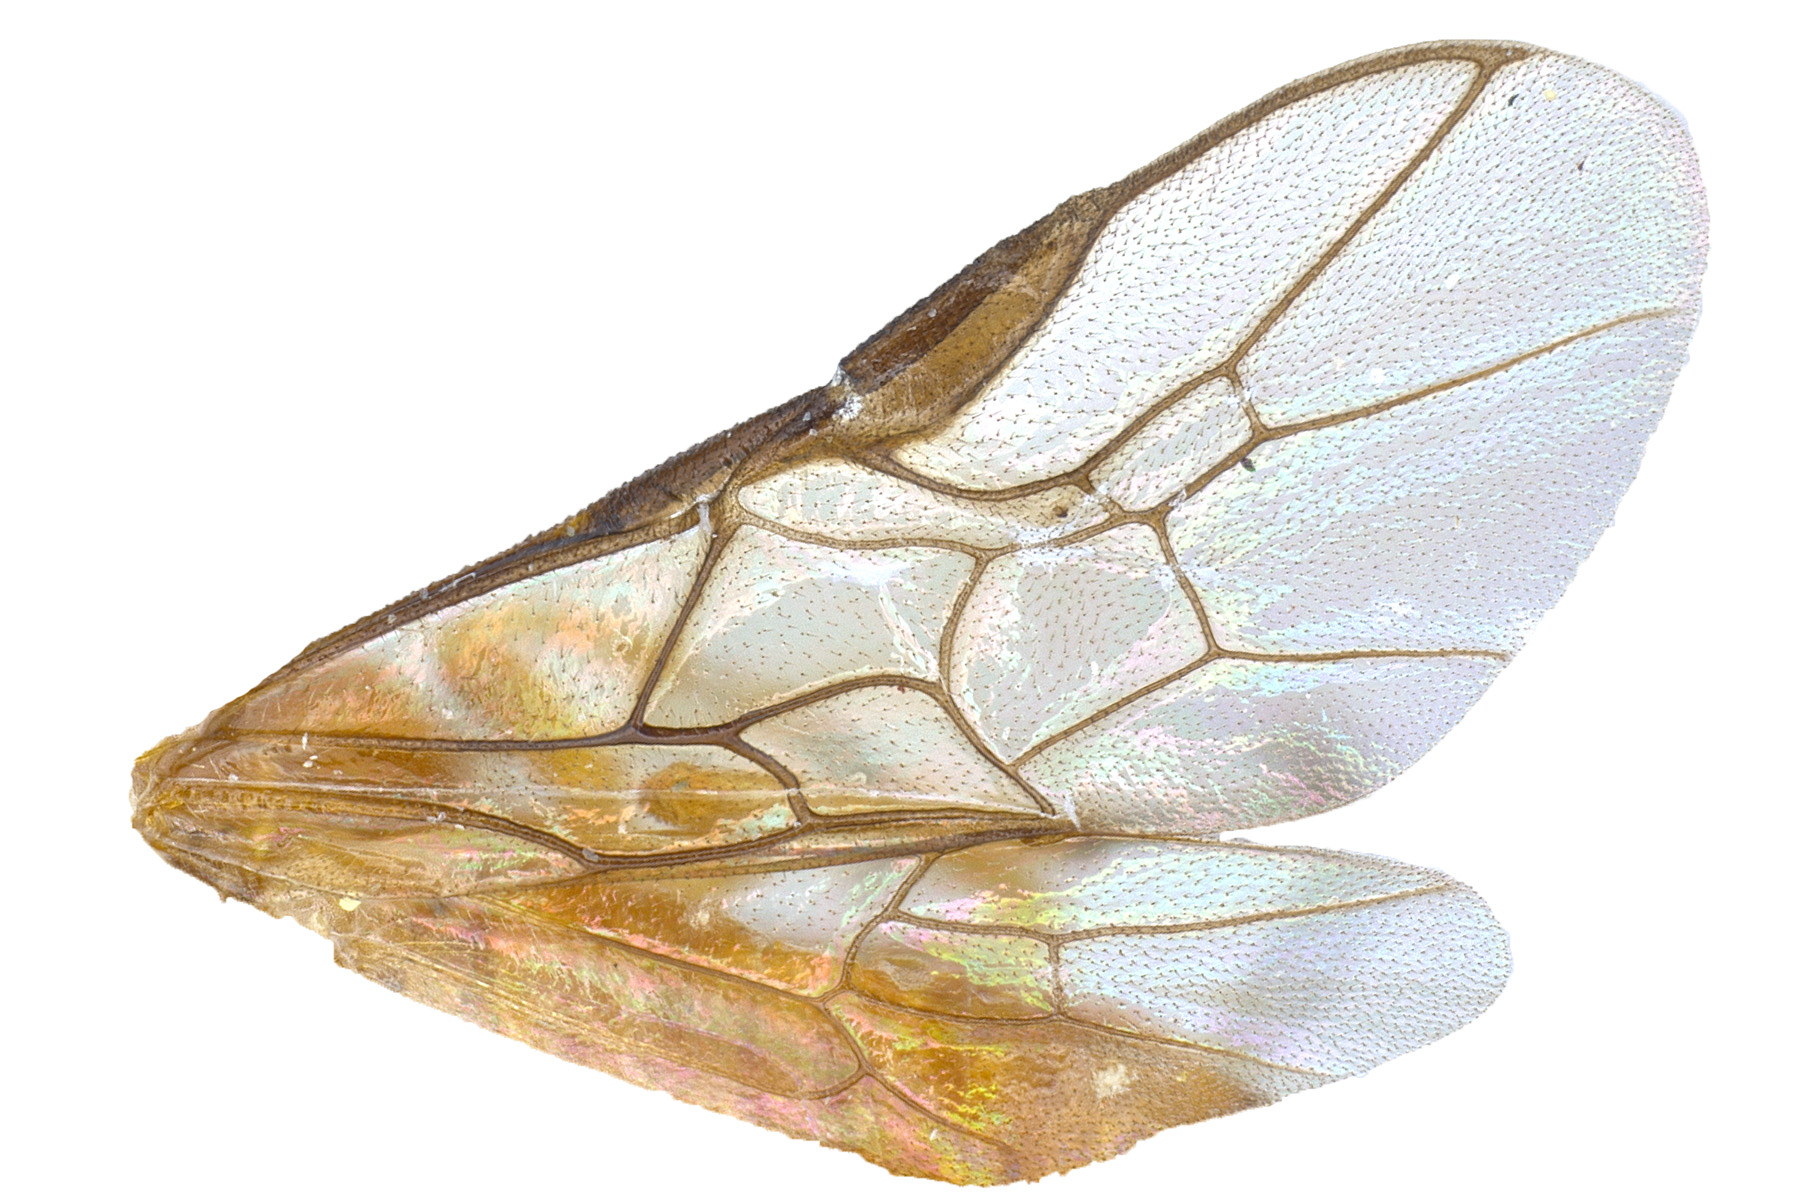 <em>Acordulecera dorsalis</em> wings; photo by J. Orr, WSDA